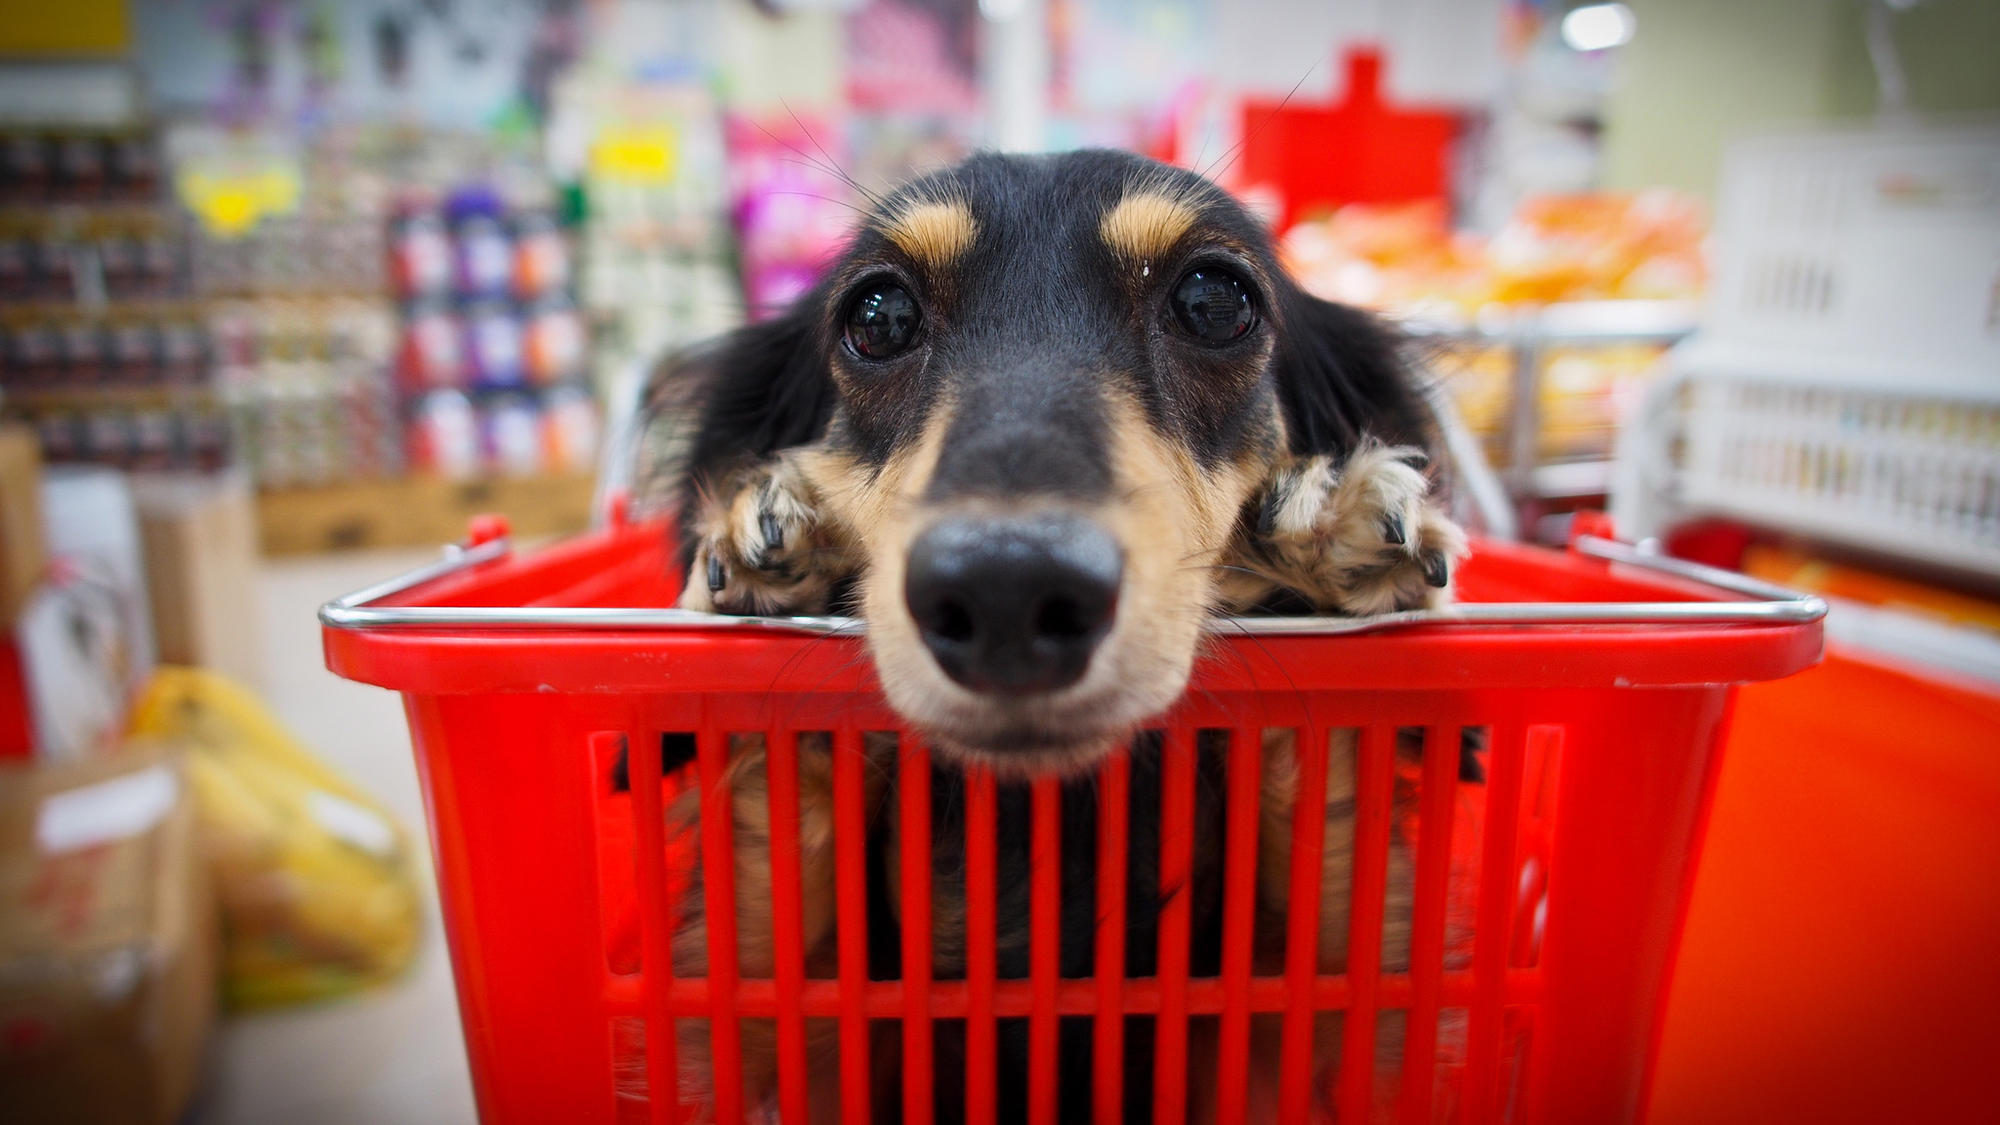 dog owners there are rules for shopping with fido even in pet friendly stores chicago tribune. Black Bedroom Furniture Sets. Home Design Ideas